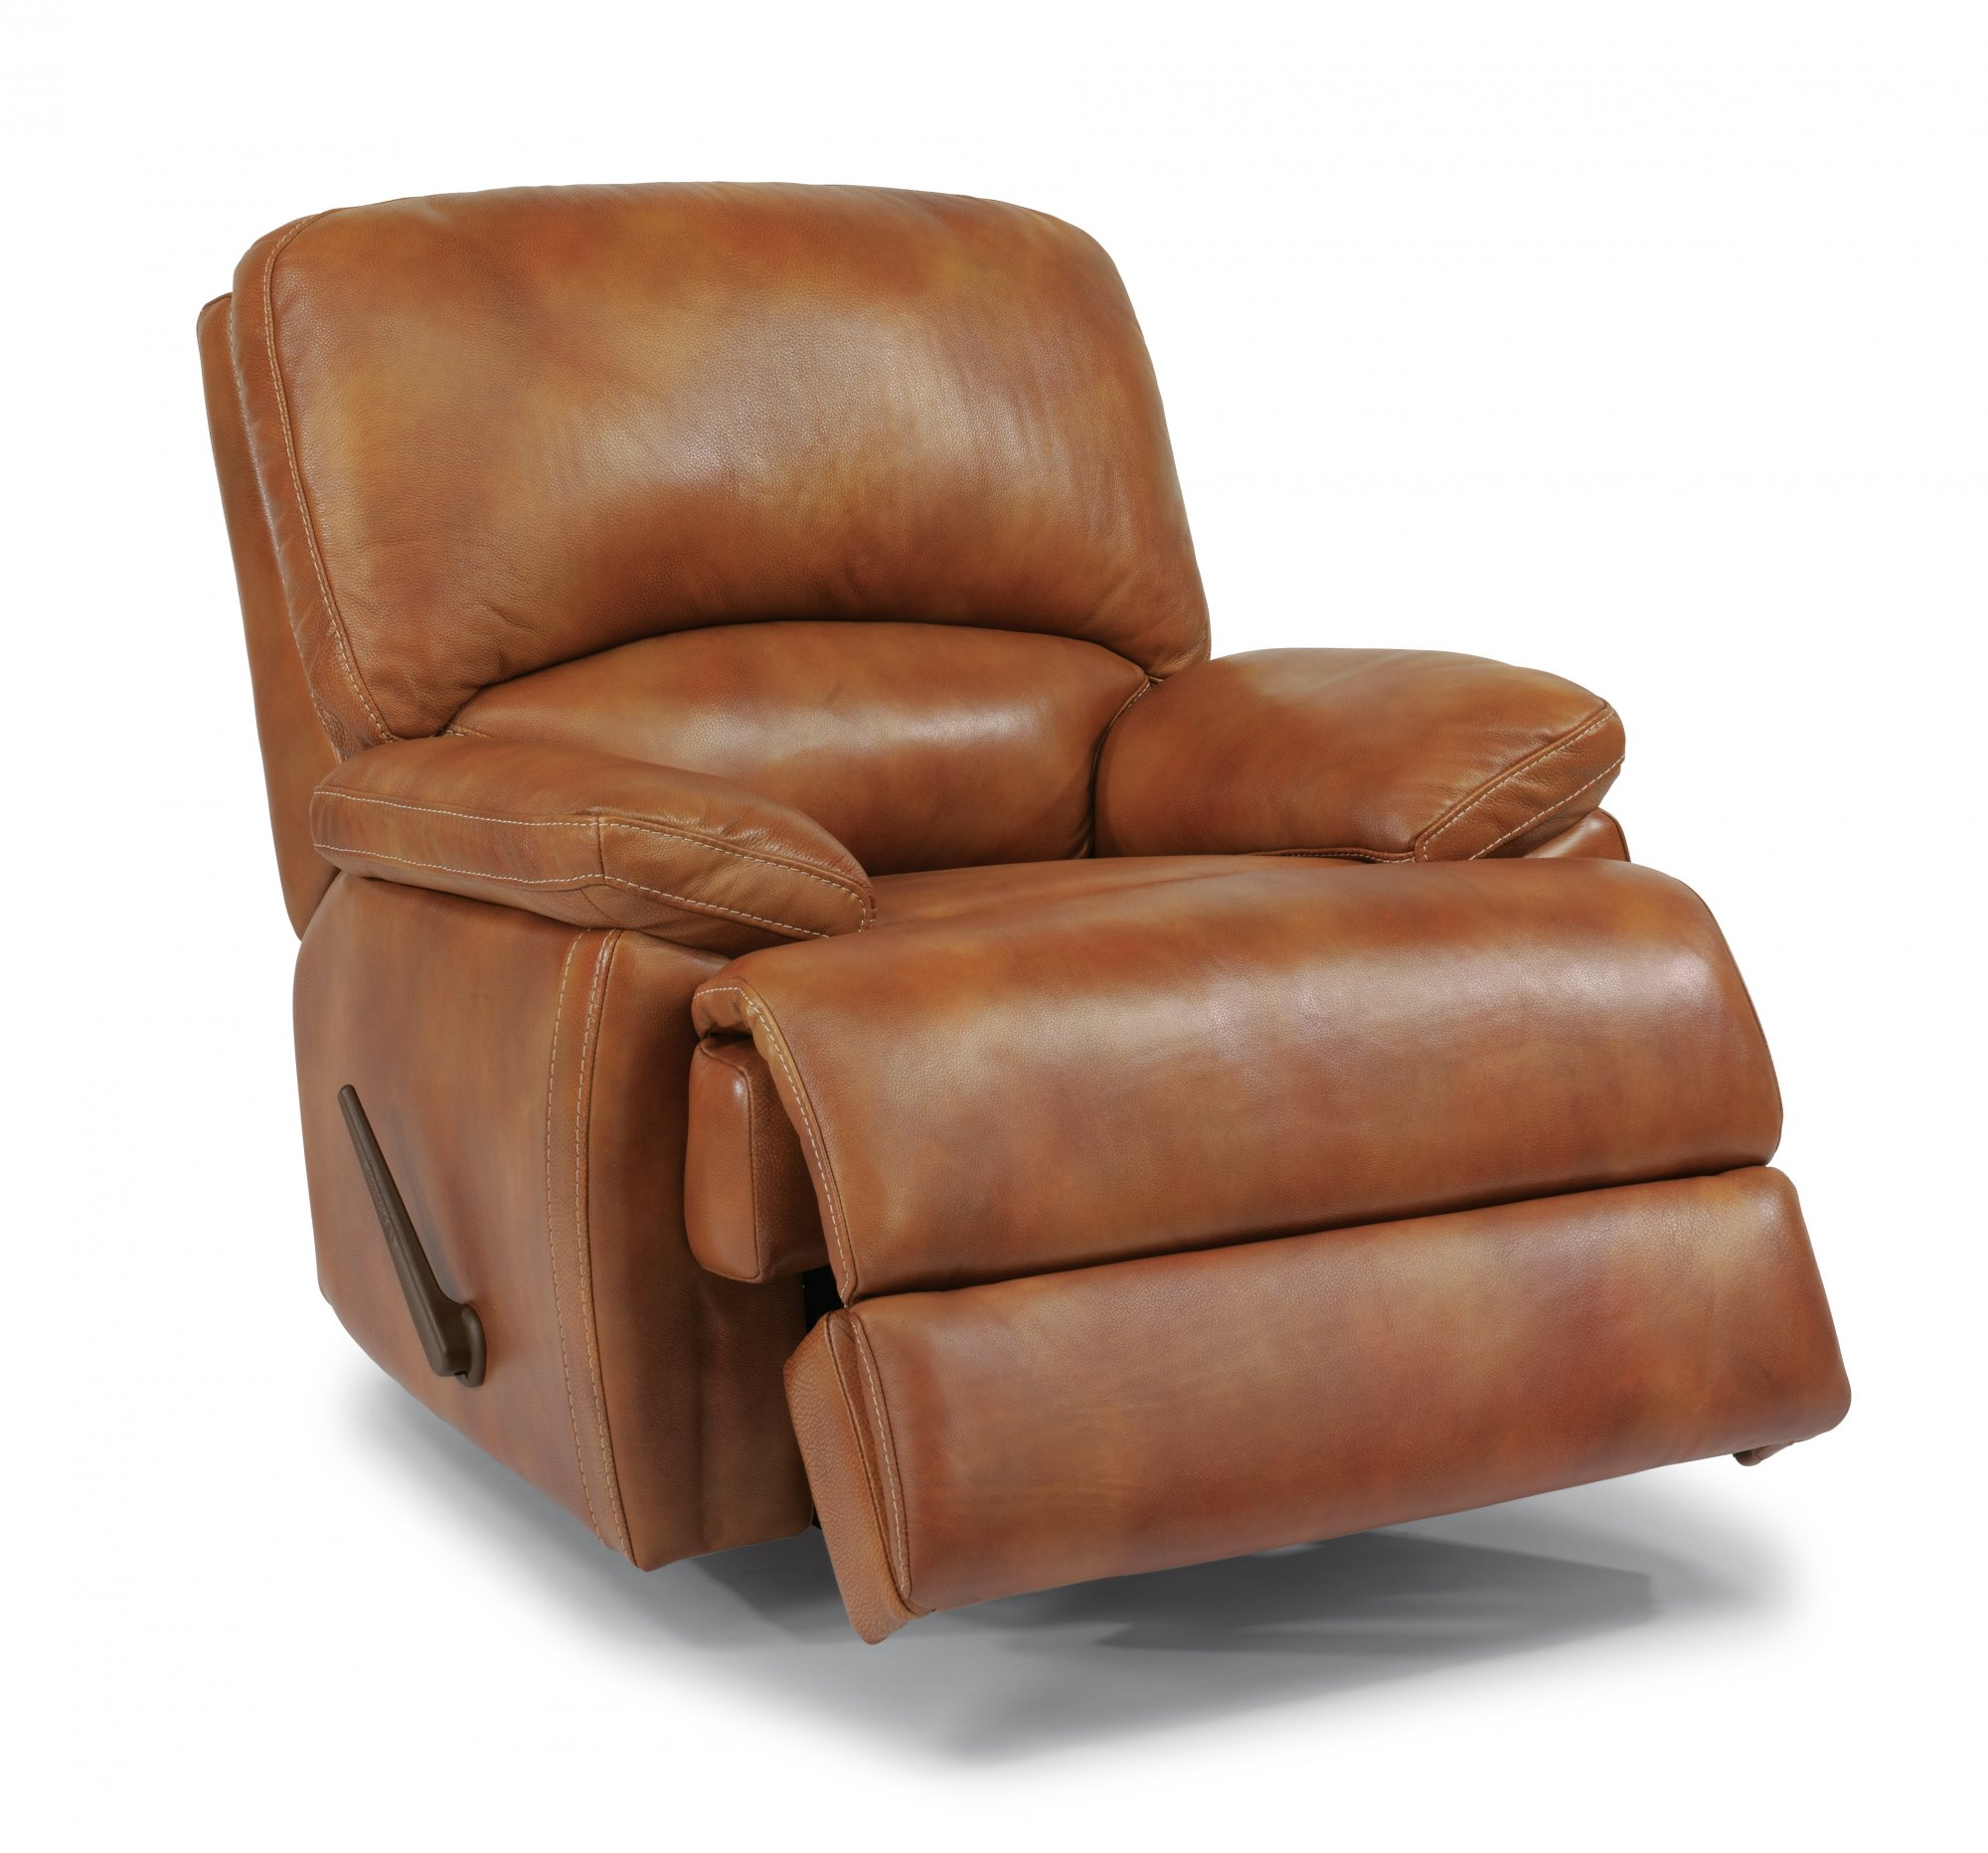 Remarkable Flexsteel 1127 31 Dylan Leather Three Cushion Sofa Camellatalisay Diy Chair Ideas Camellatalisaycom